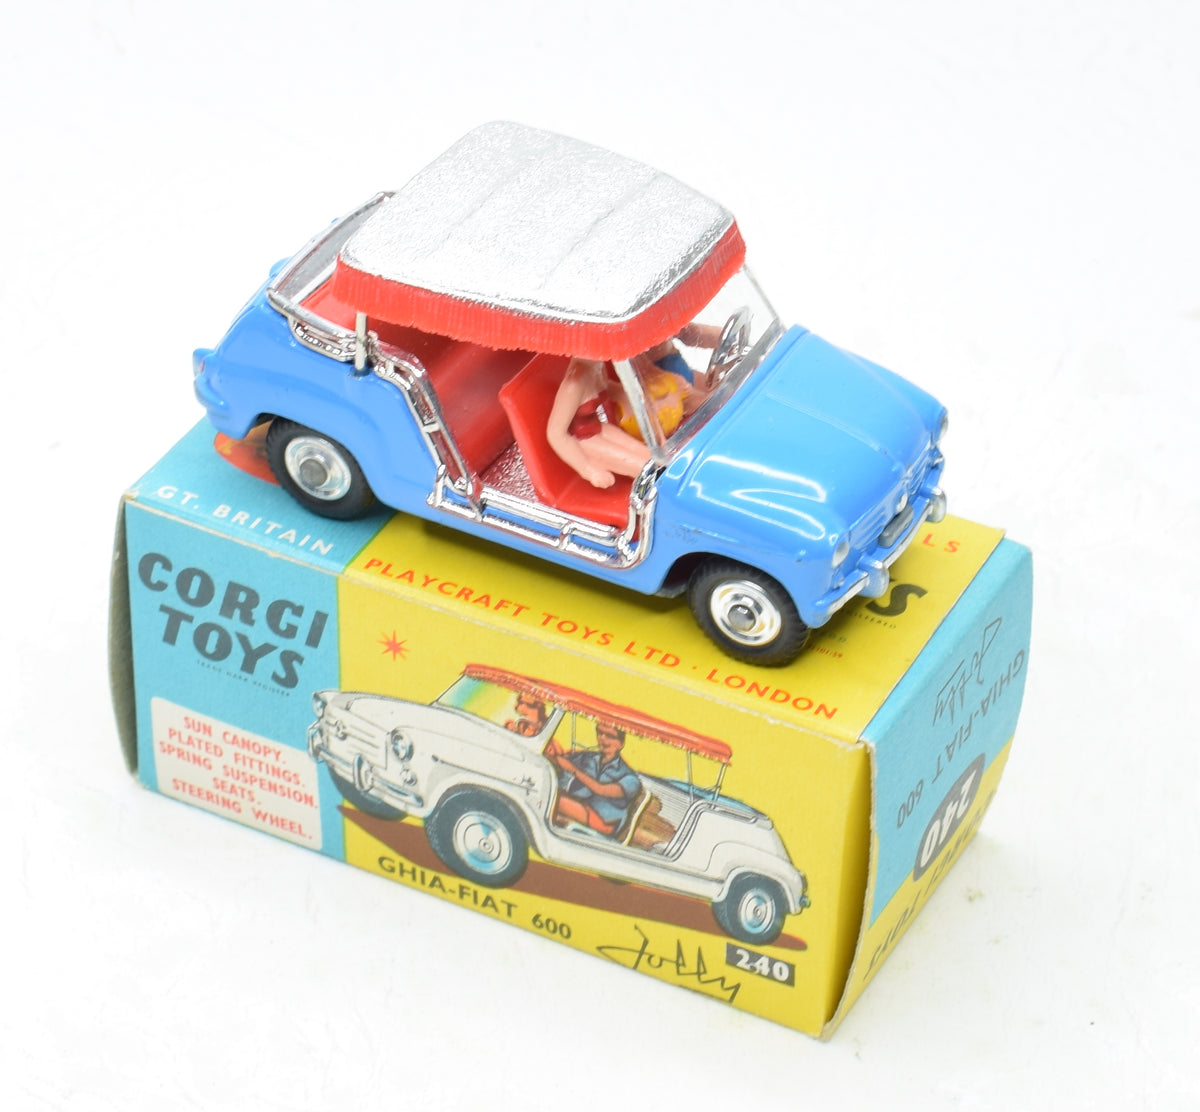 Corgi toys 240 Fiat Jolly Very Near Mint/Boxed 'Carlton' Collection